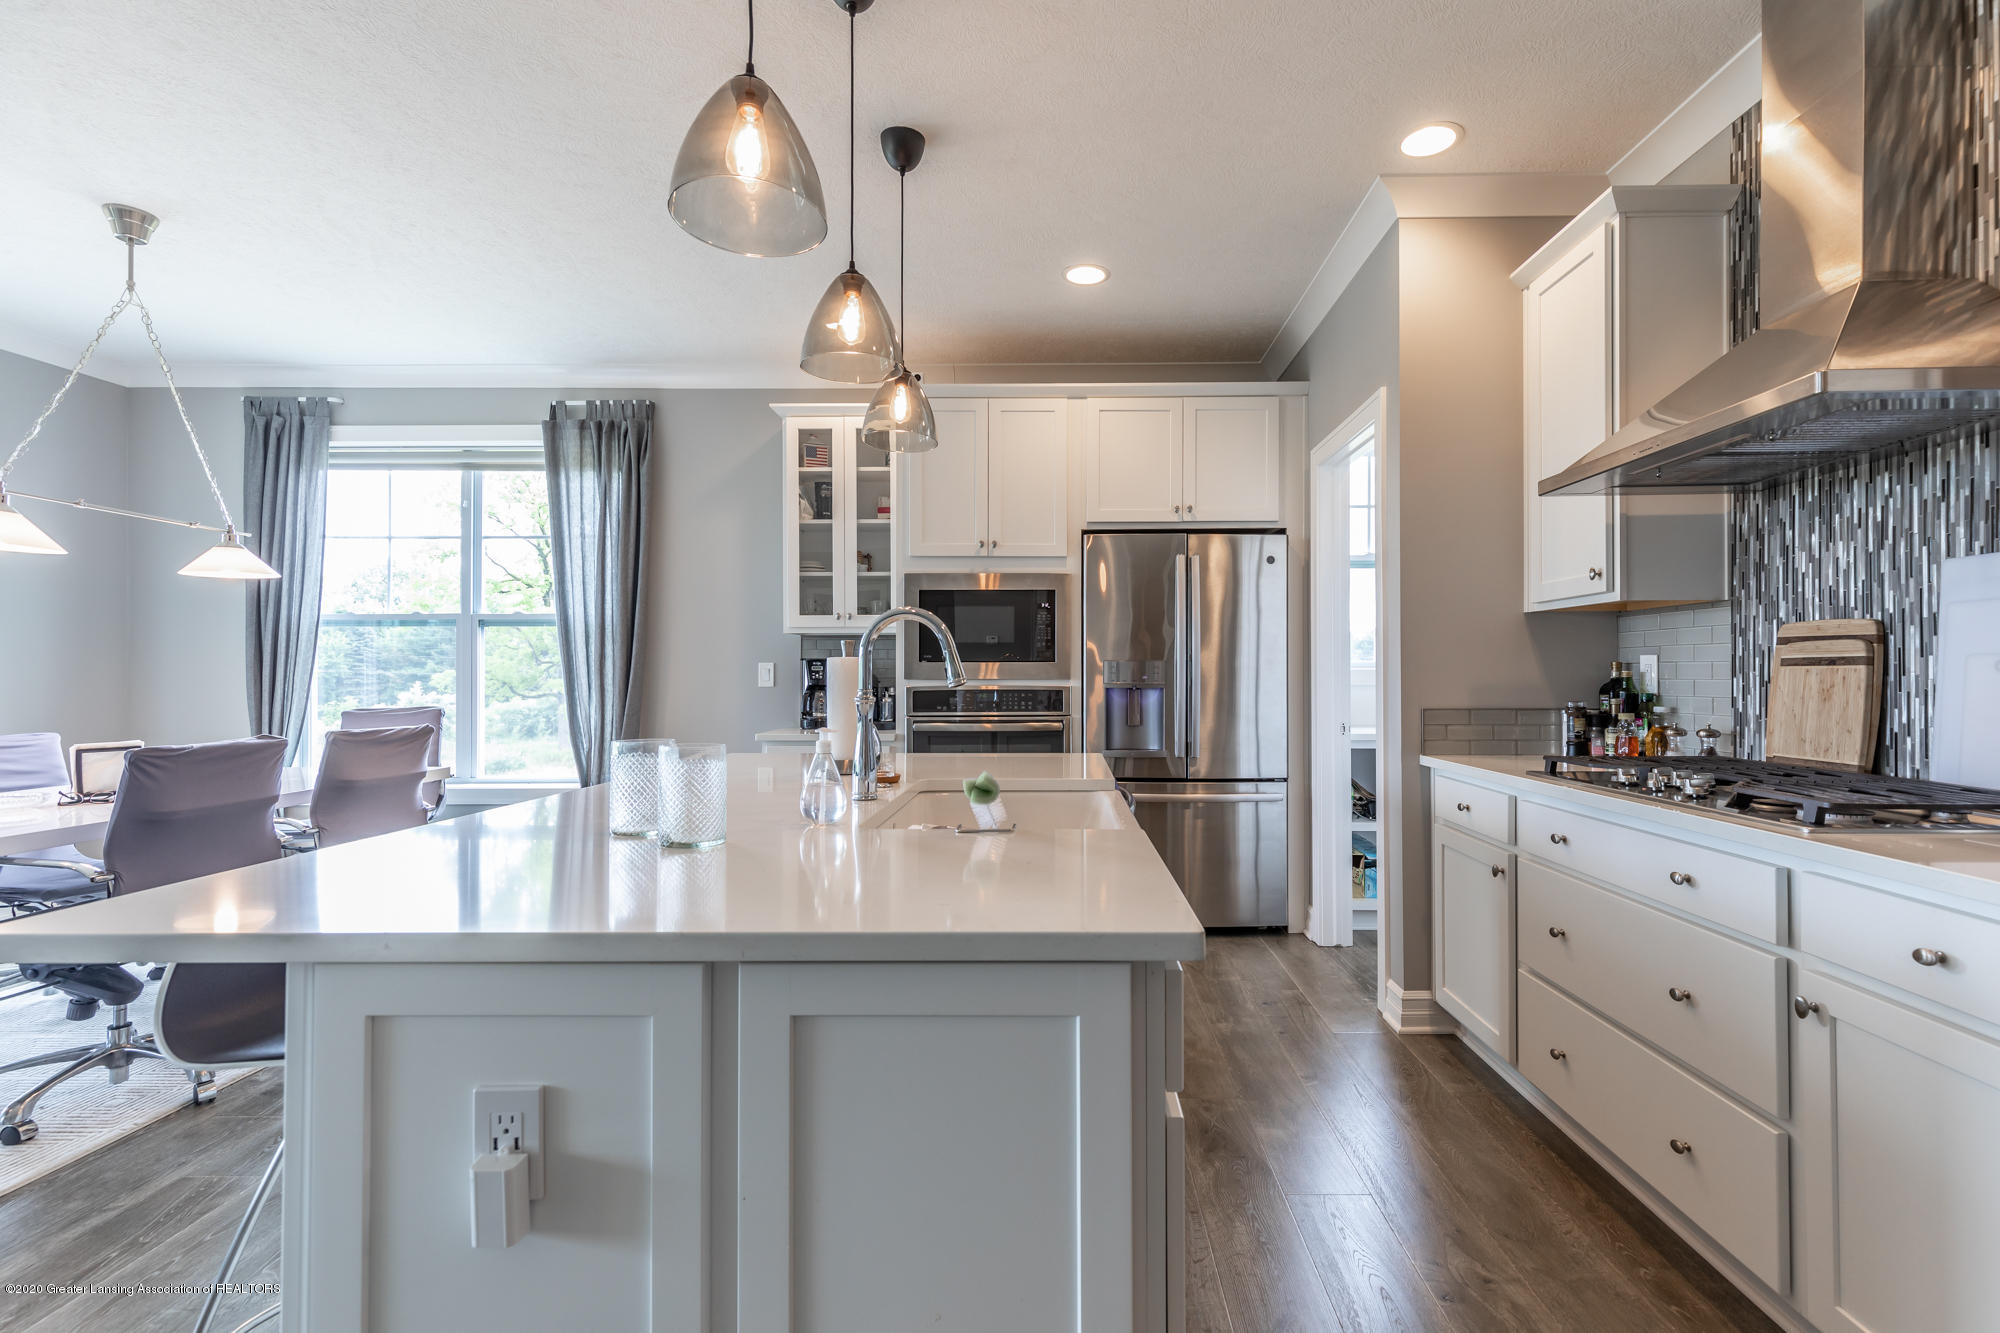 4020 Hagadorn Rd - Kitchen 2 - 5